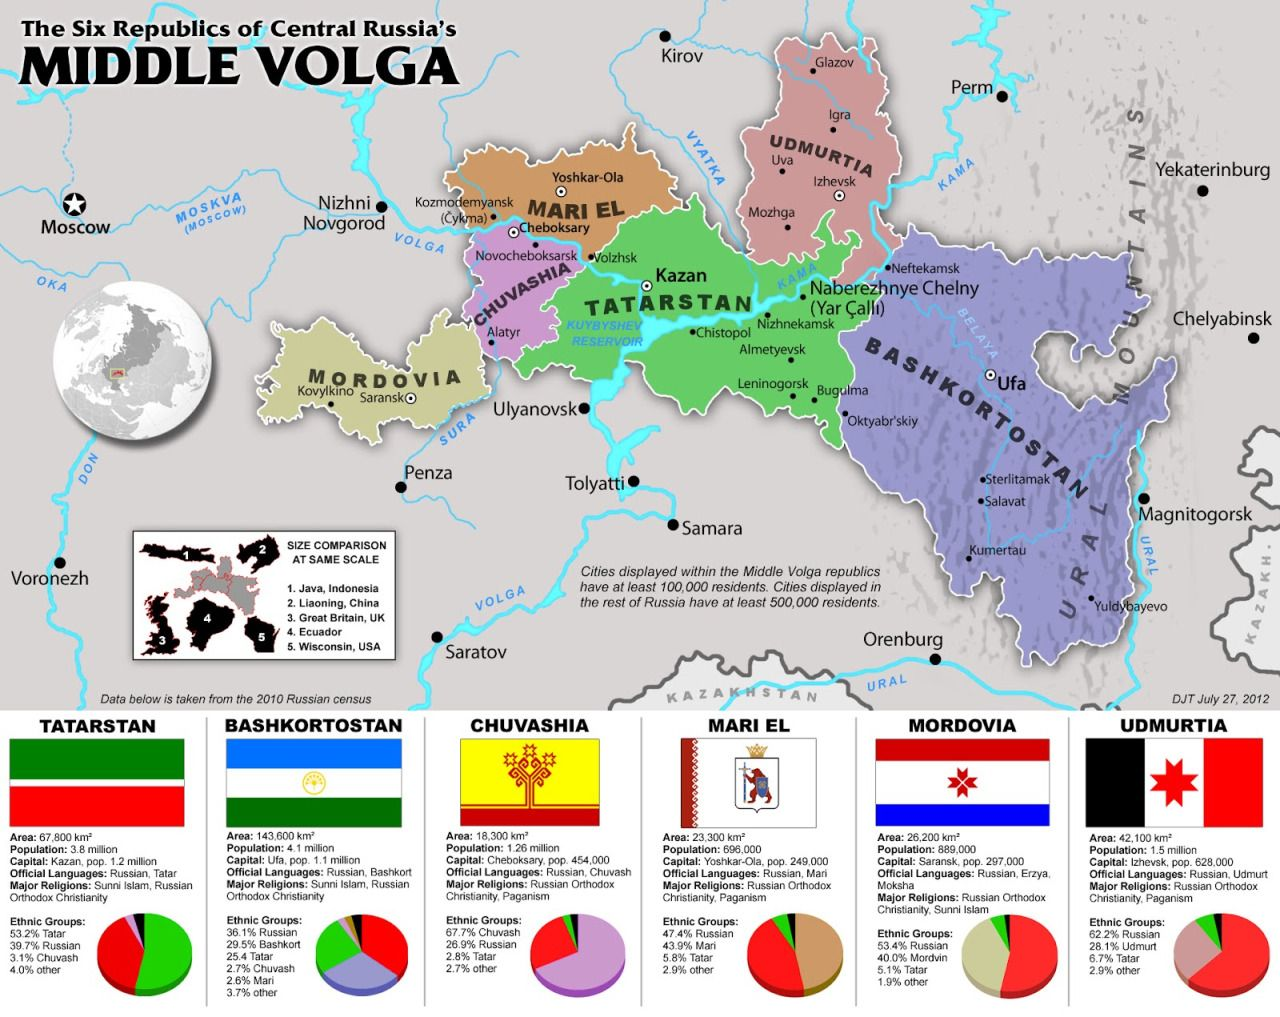 The six republics of Middle Volga one of the most diverse regions